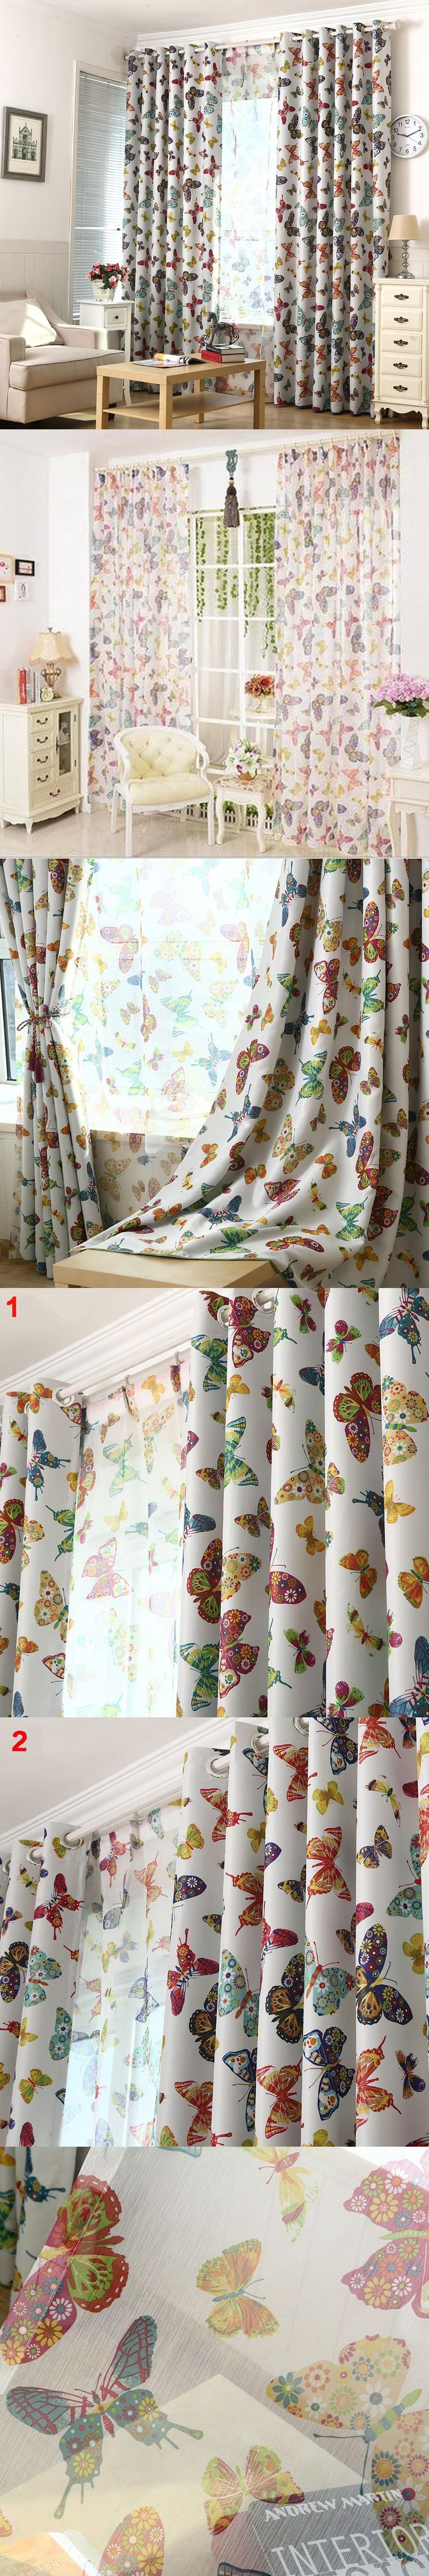 Blackout Drapery Panels | Cheap Blackout Curtains | Bedroom Curtains Blackout